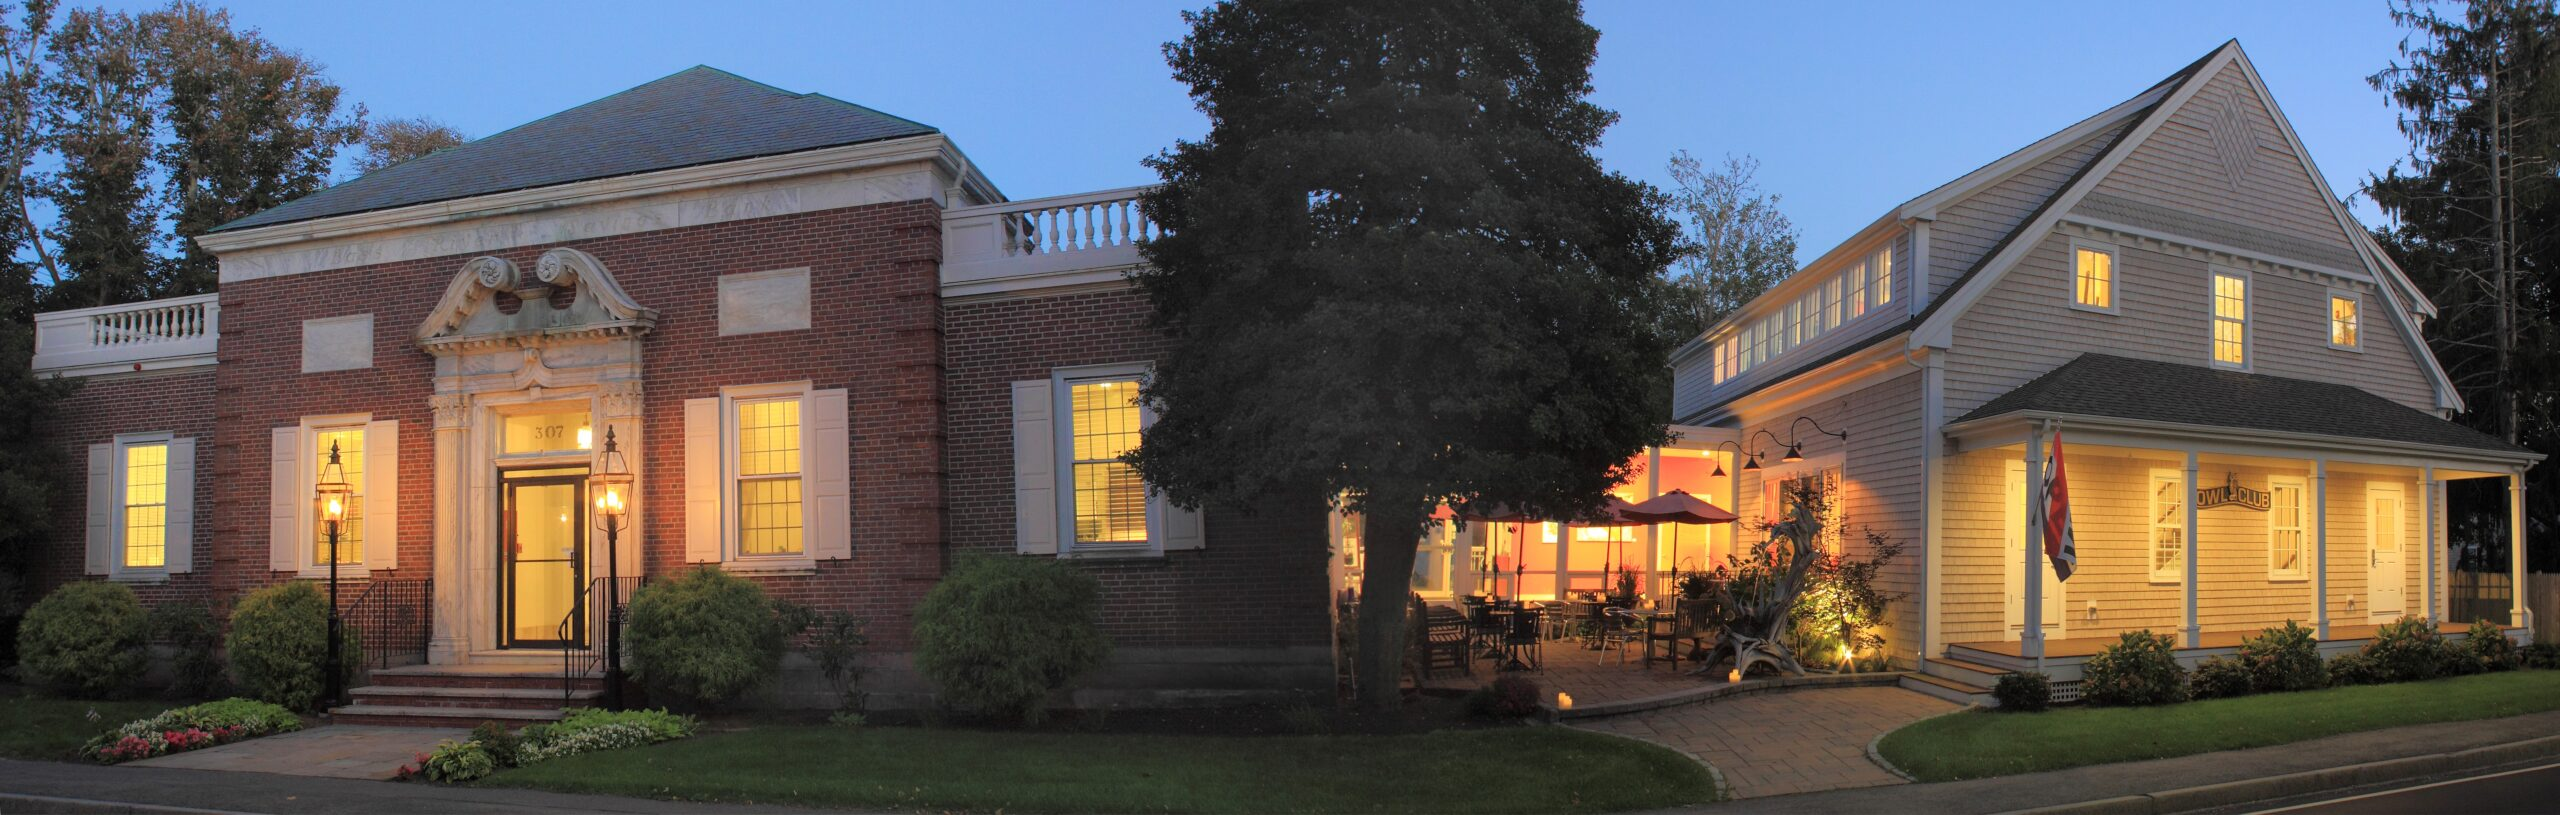 Exterior of the cultural center of cape code at night.